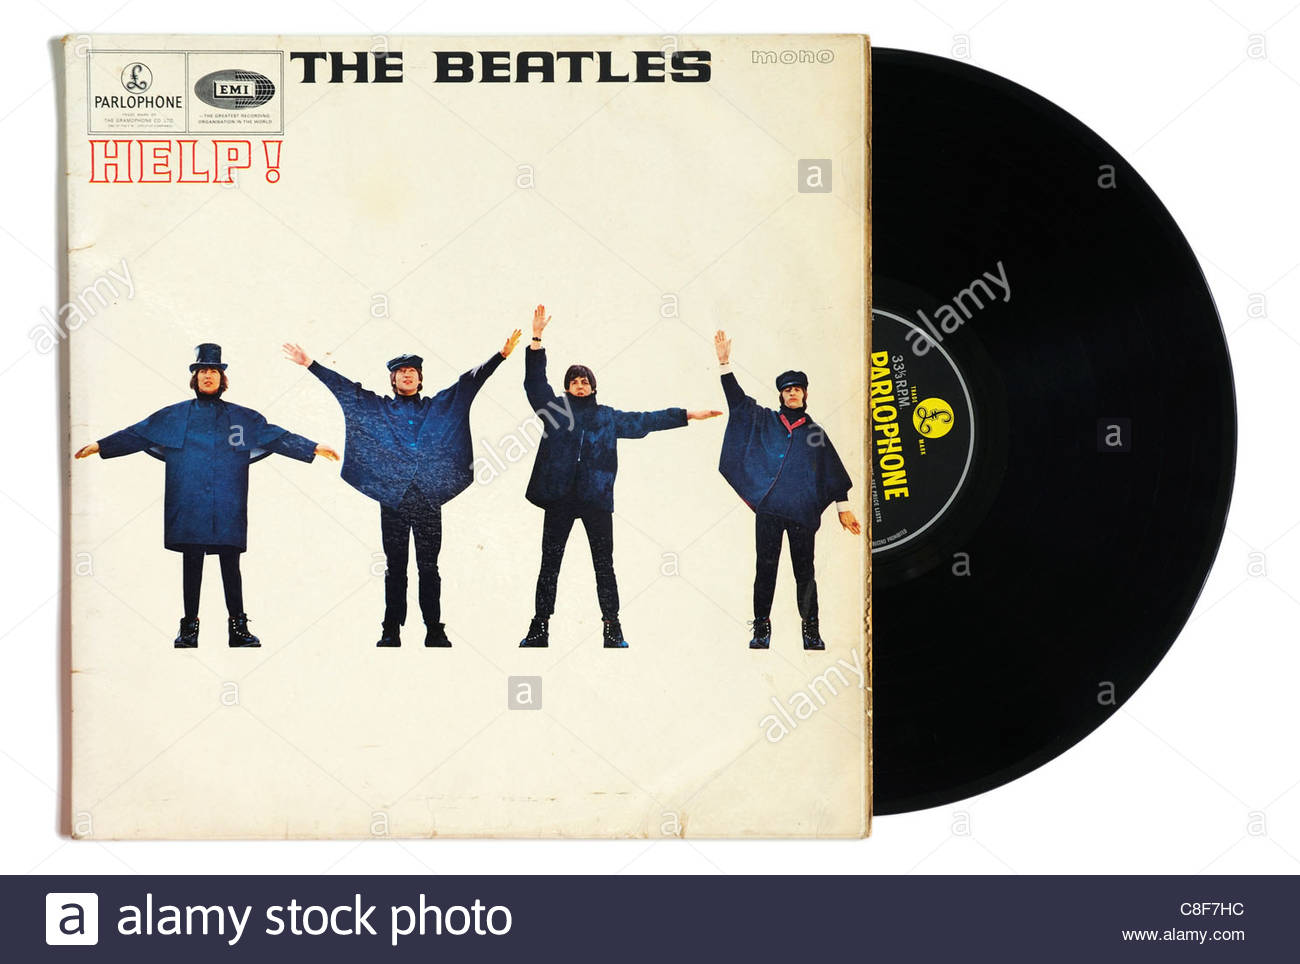 Record Cover Stock Photos & Record Cover Stock Images - Alamy